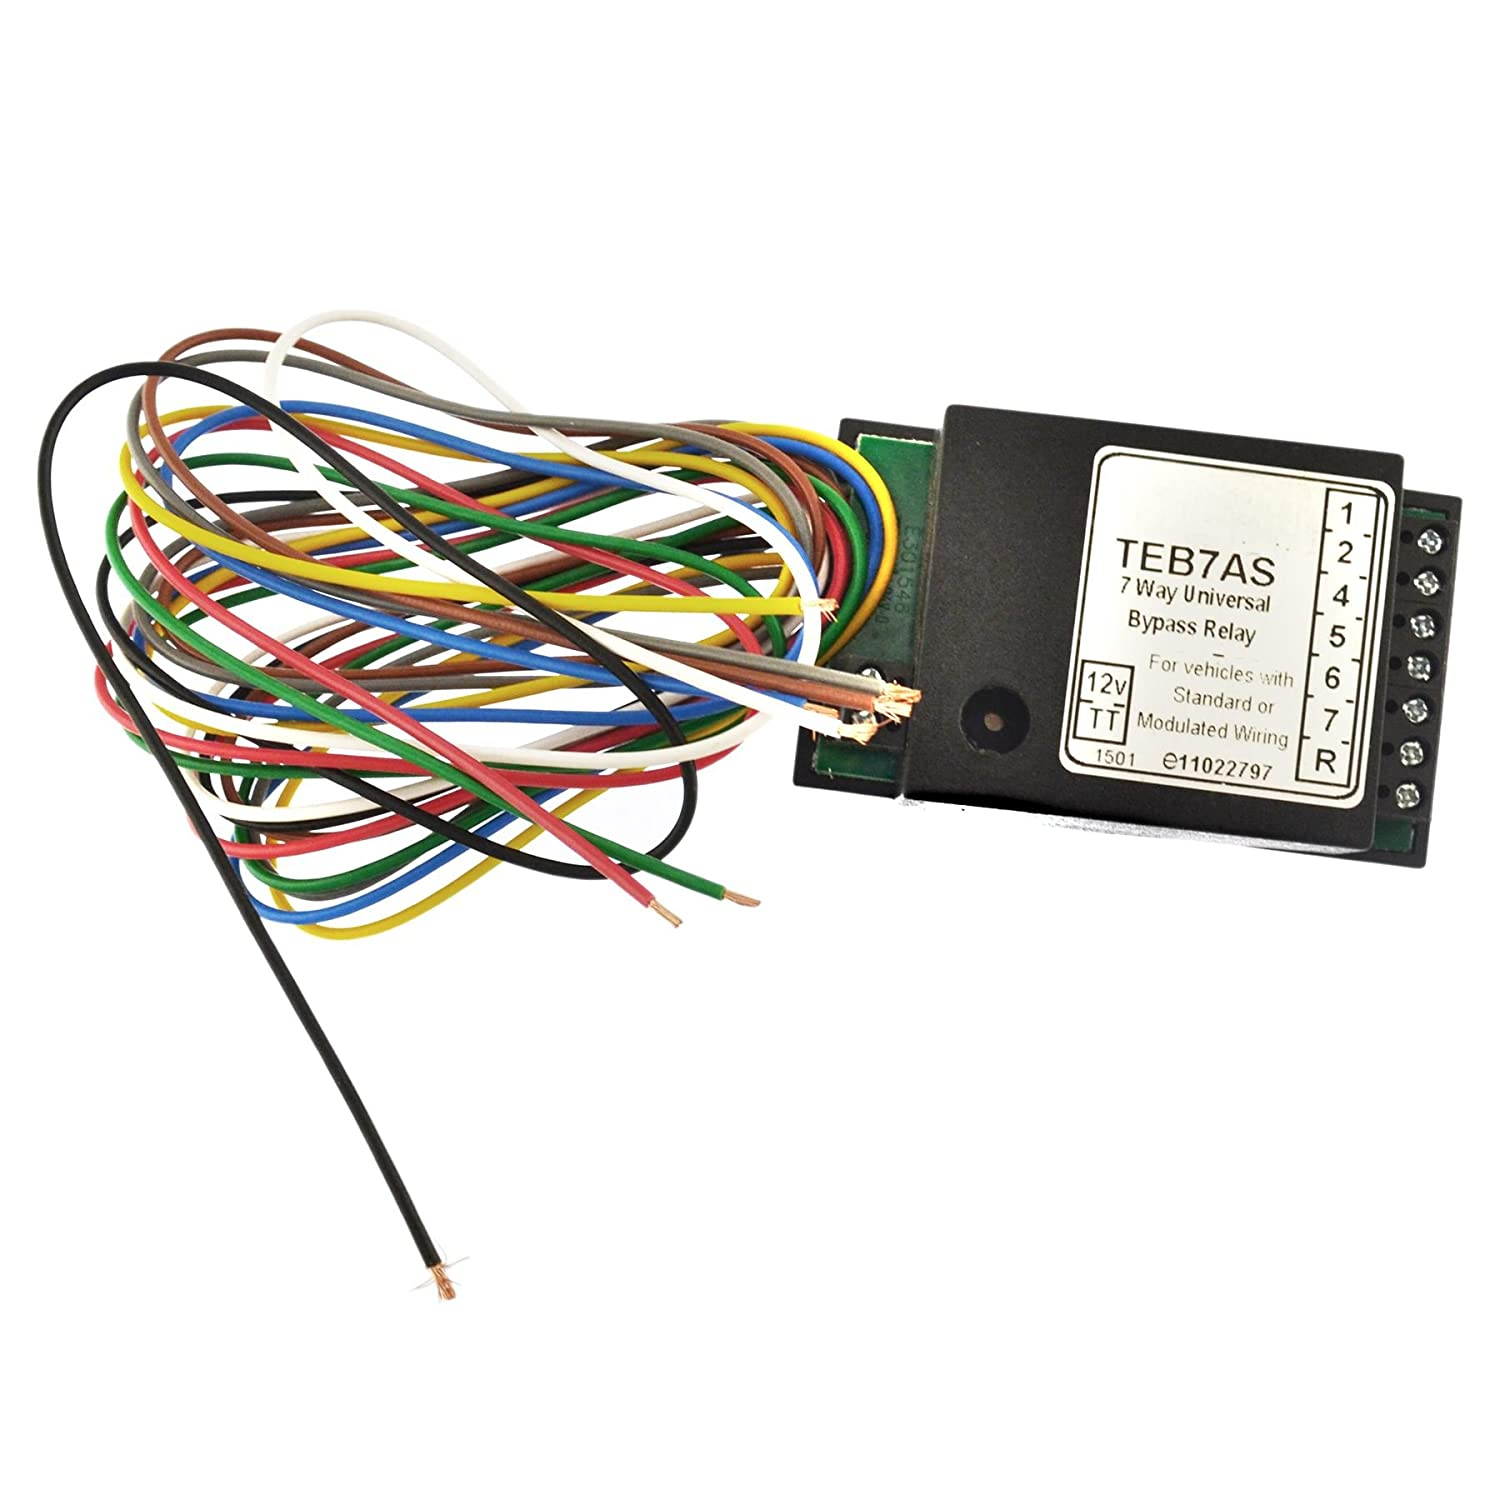 ryder 7 way bypass relay wiring diagram. Black Bedroom Furniture Sets. Home Design Ideas